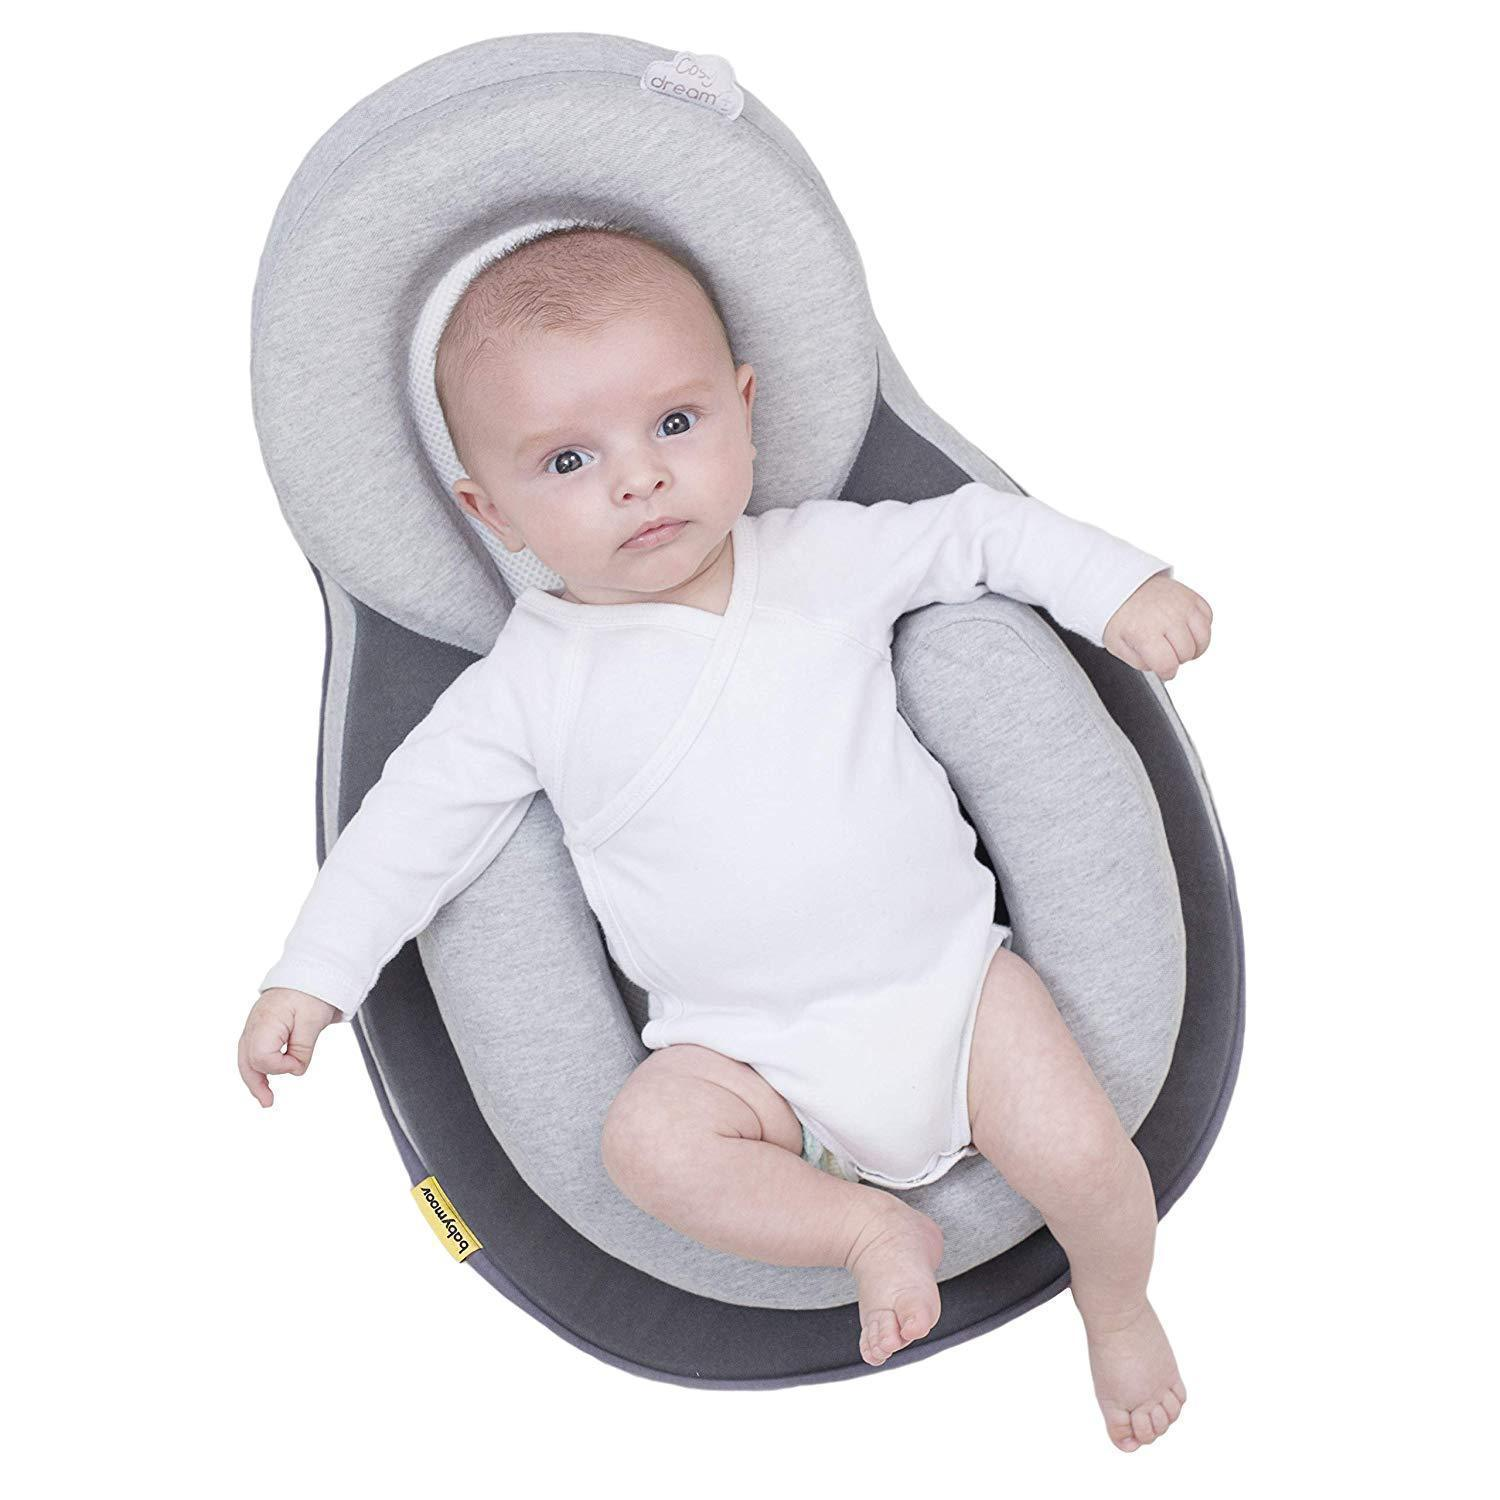 50% Off - Portable Baby Bed